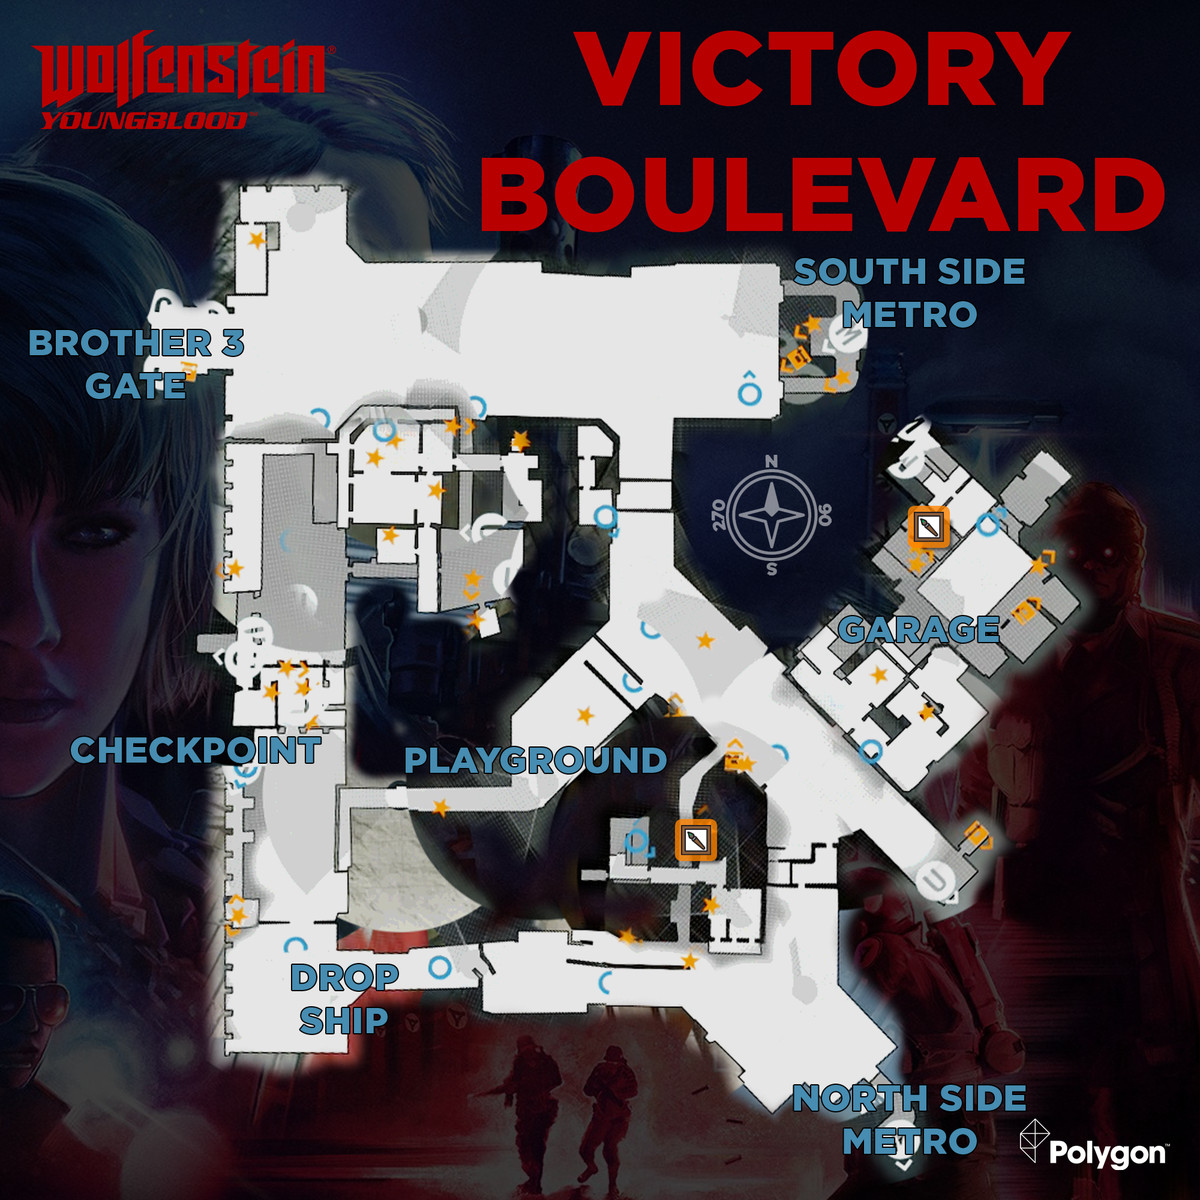 Wolfenstein: Youngblood Victory Boulevard map with Cassette Tapes icons